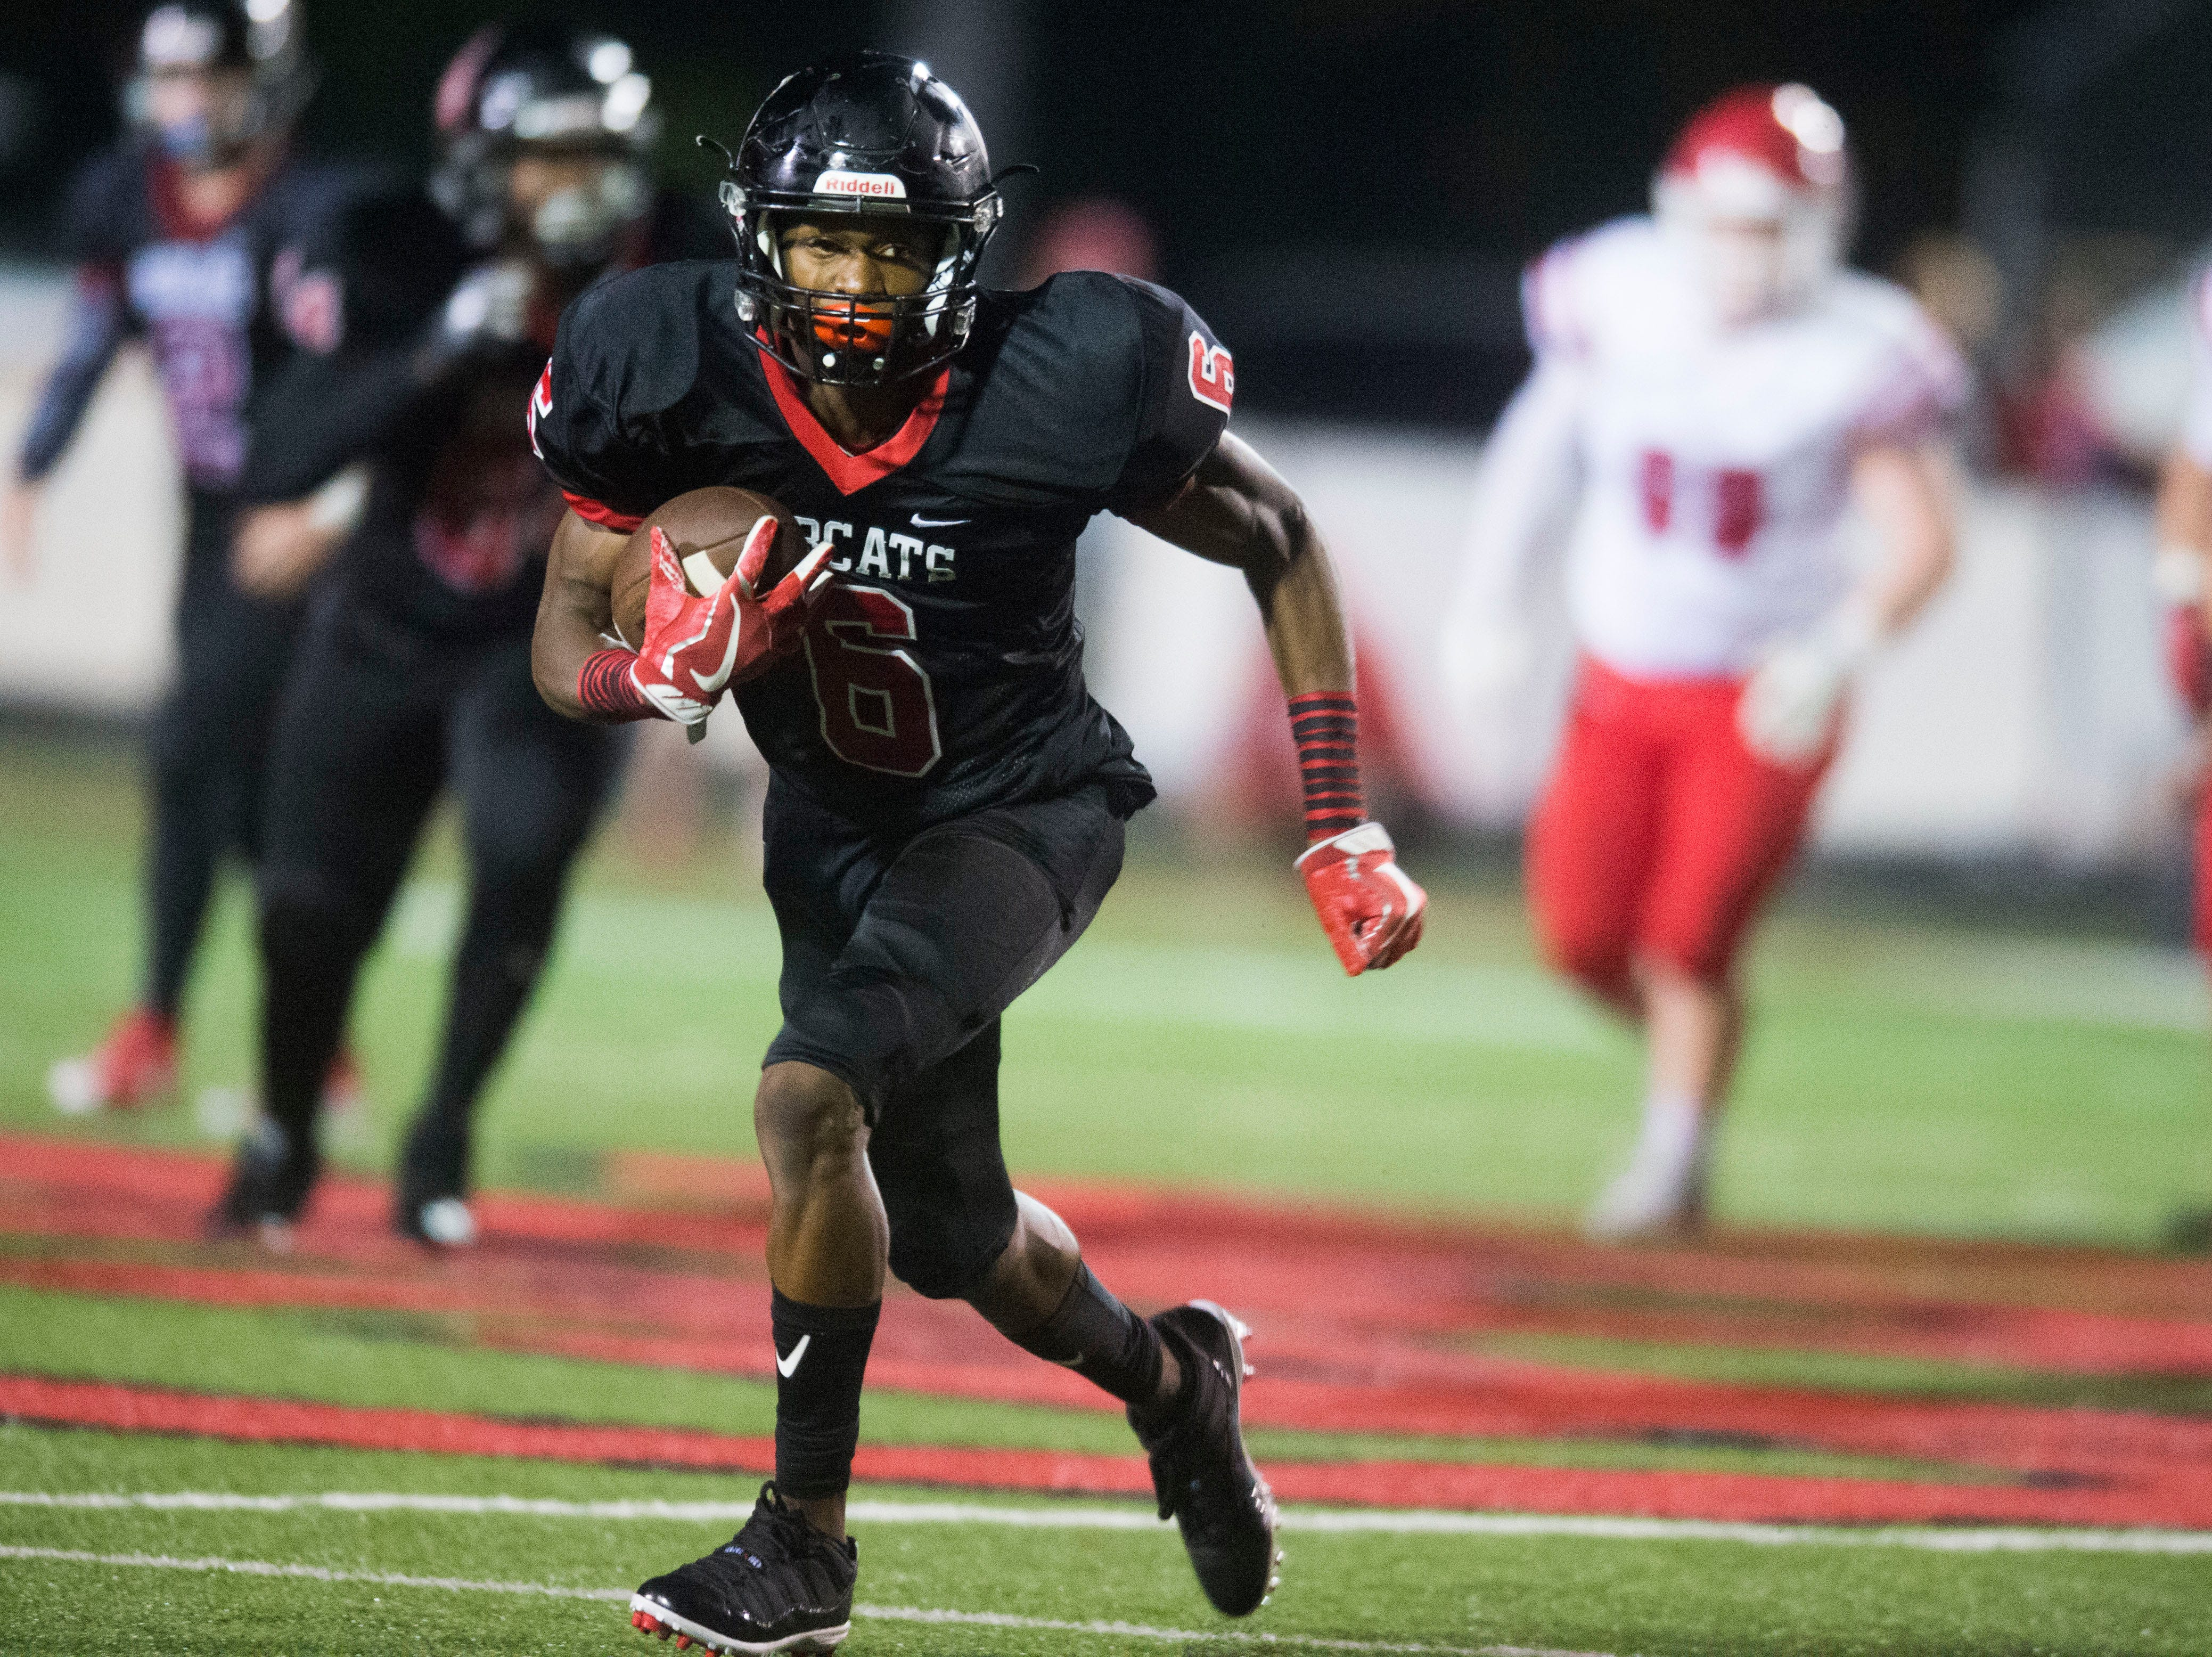 Central's Demetrien Johnson (6) runs the ball during a high school football game between Central and Halls at Central Friday, Sept. 28, 2018. Central won 49-17.